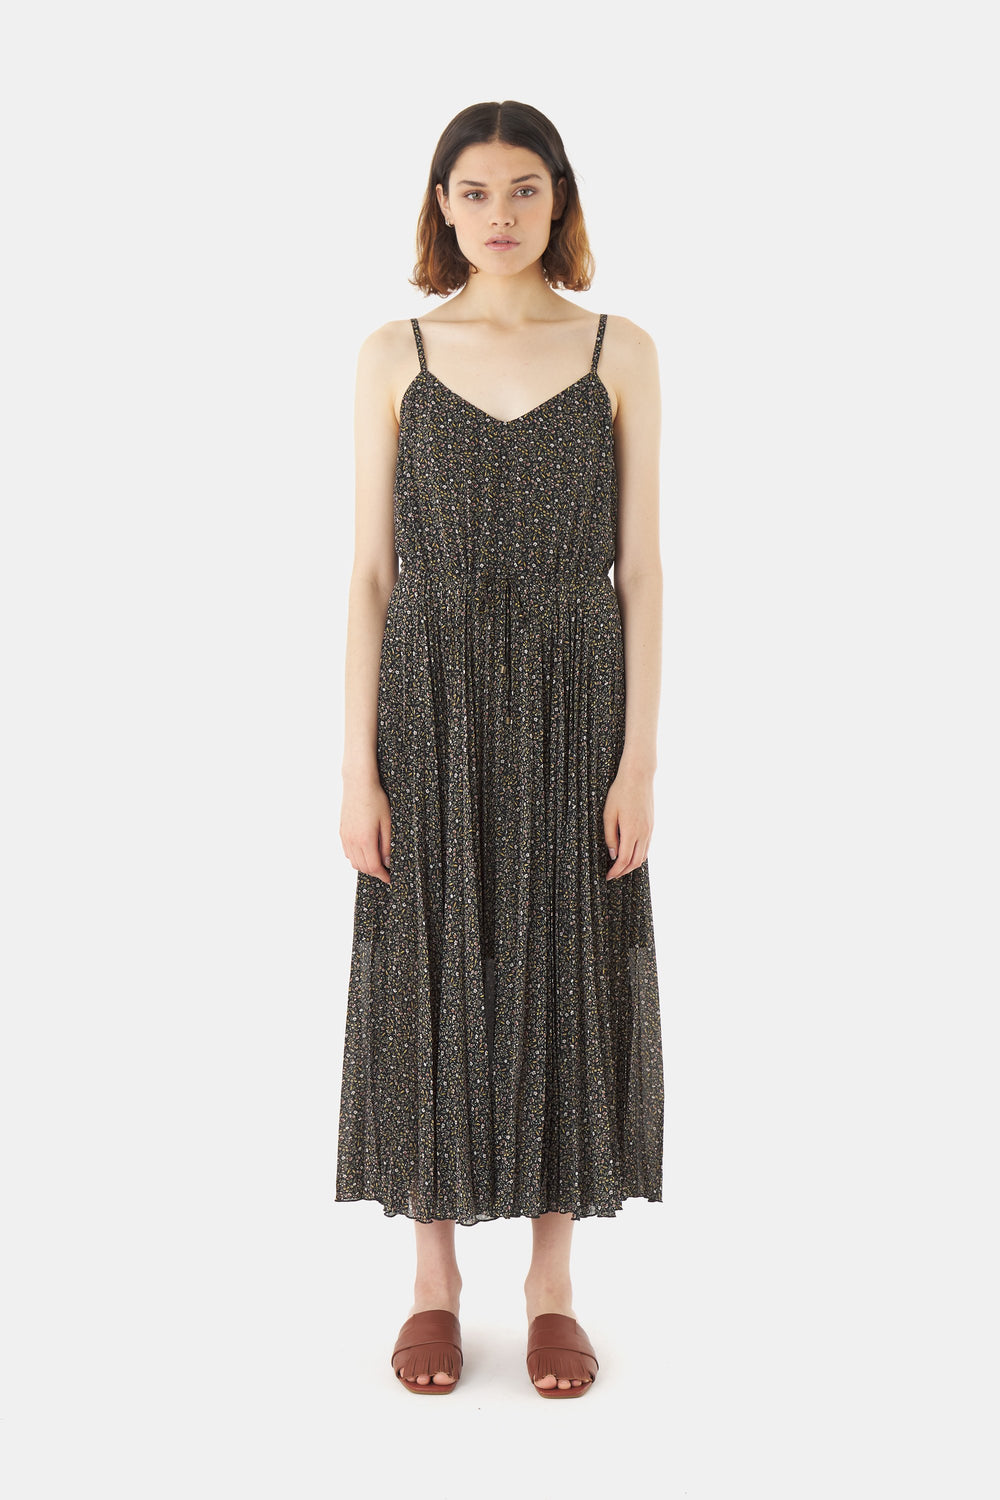 Dimity Sundress